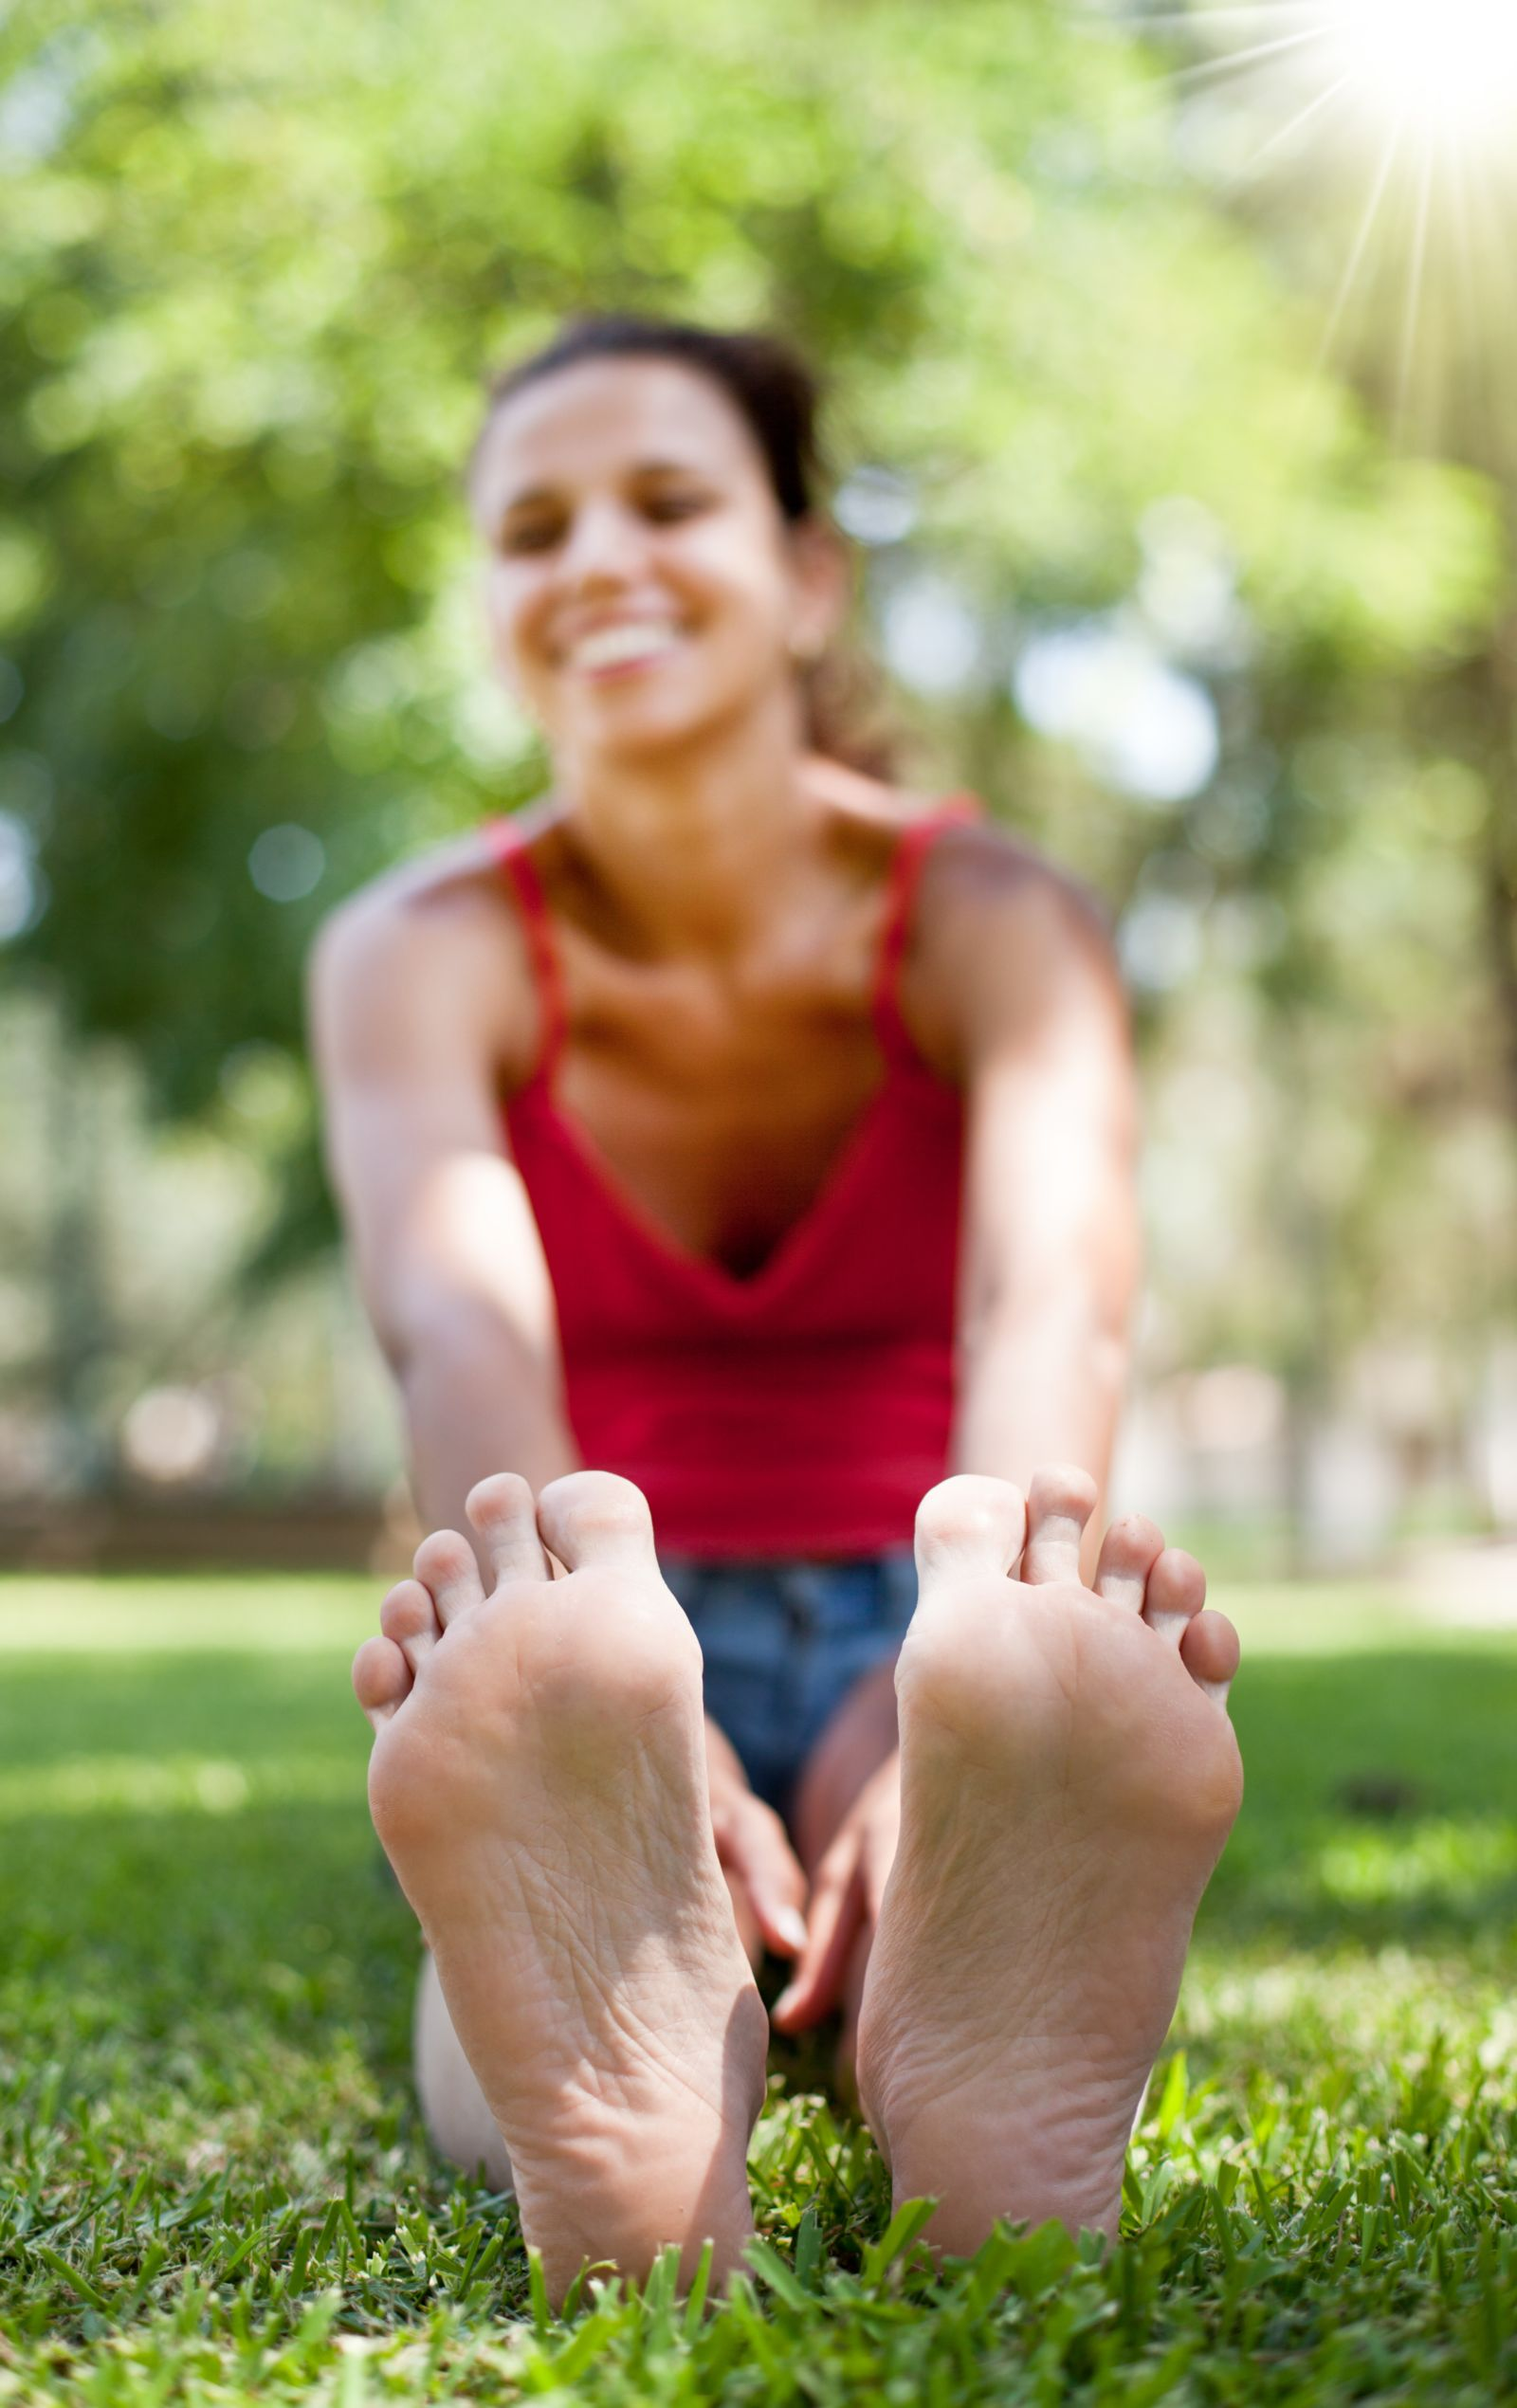 Picture of woman's feet outside stretching and smiling